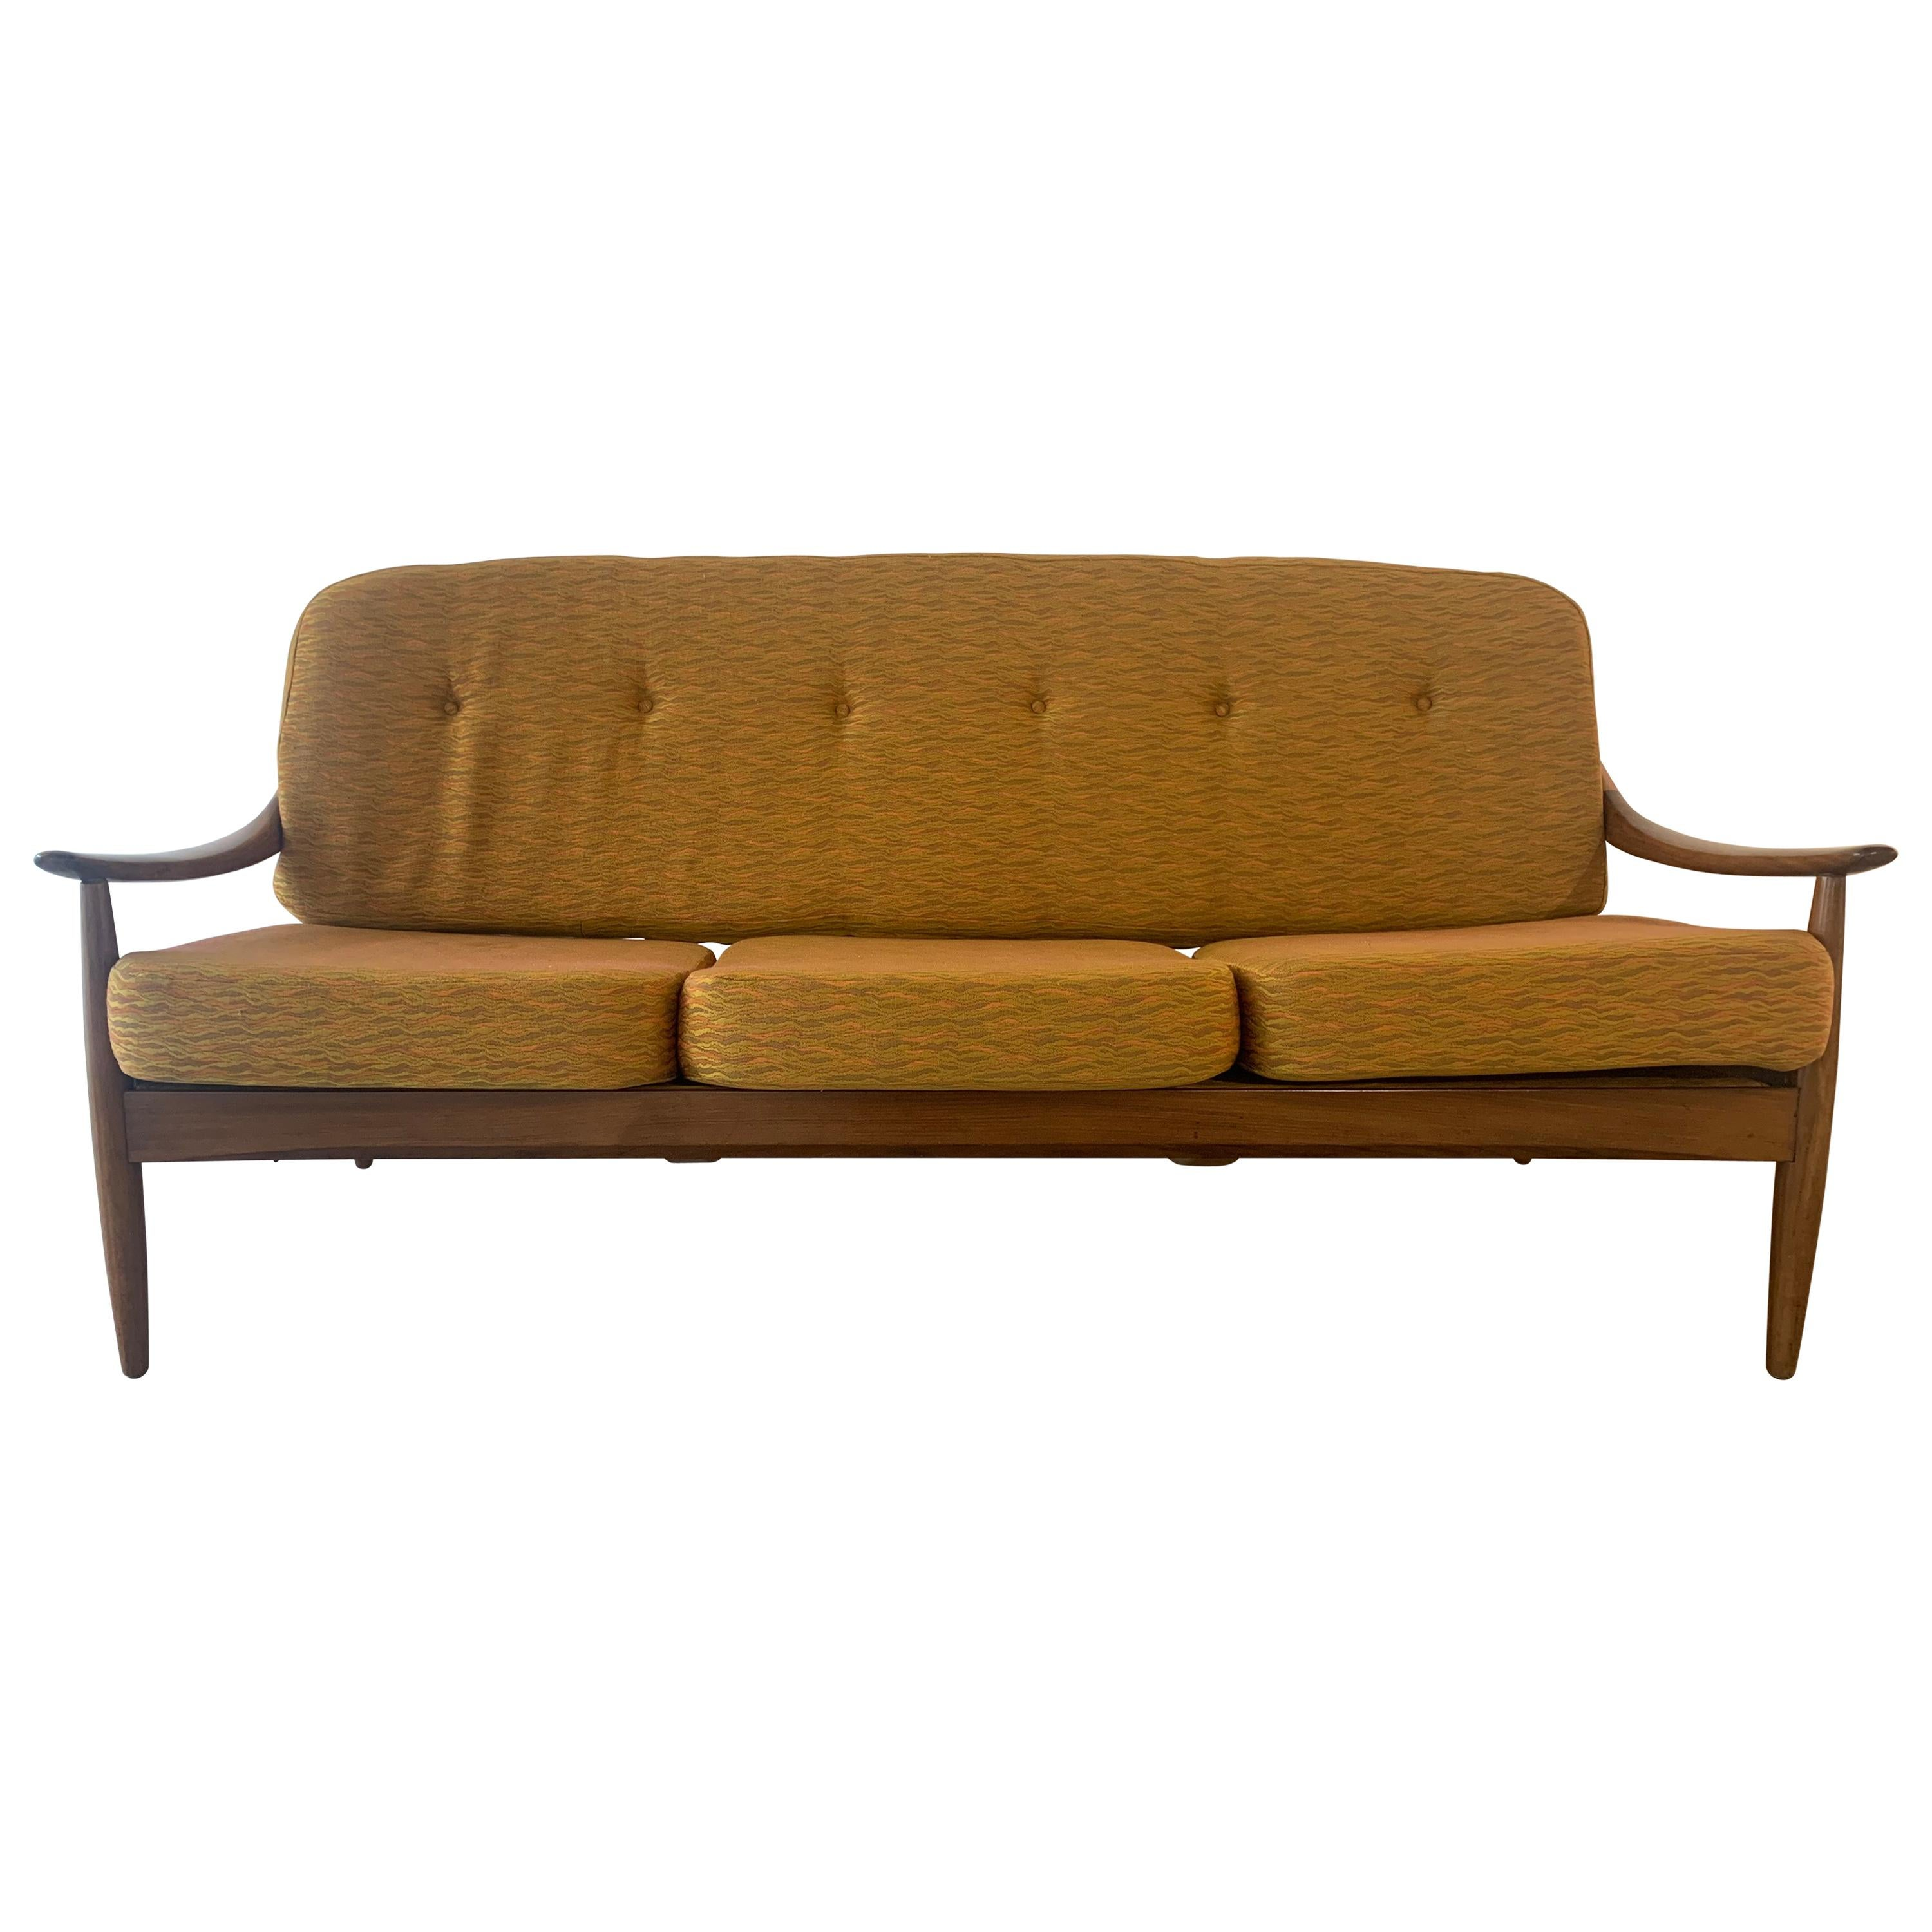 1960s Midcentury British Greaves & Thomas Solid Teak Bentwood Sofa Couch